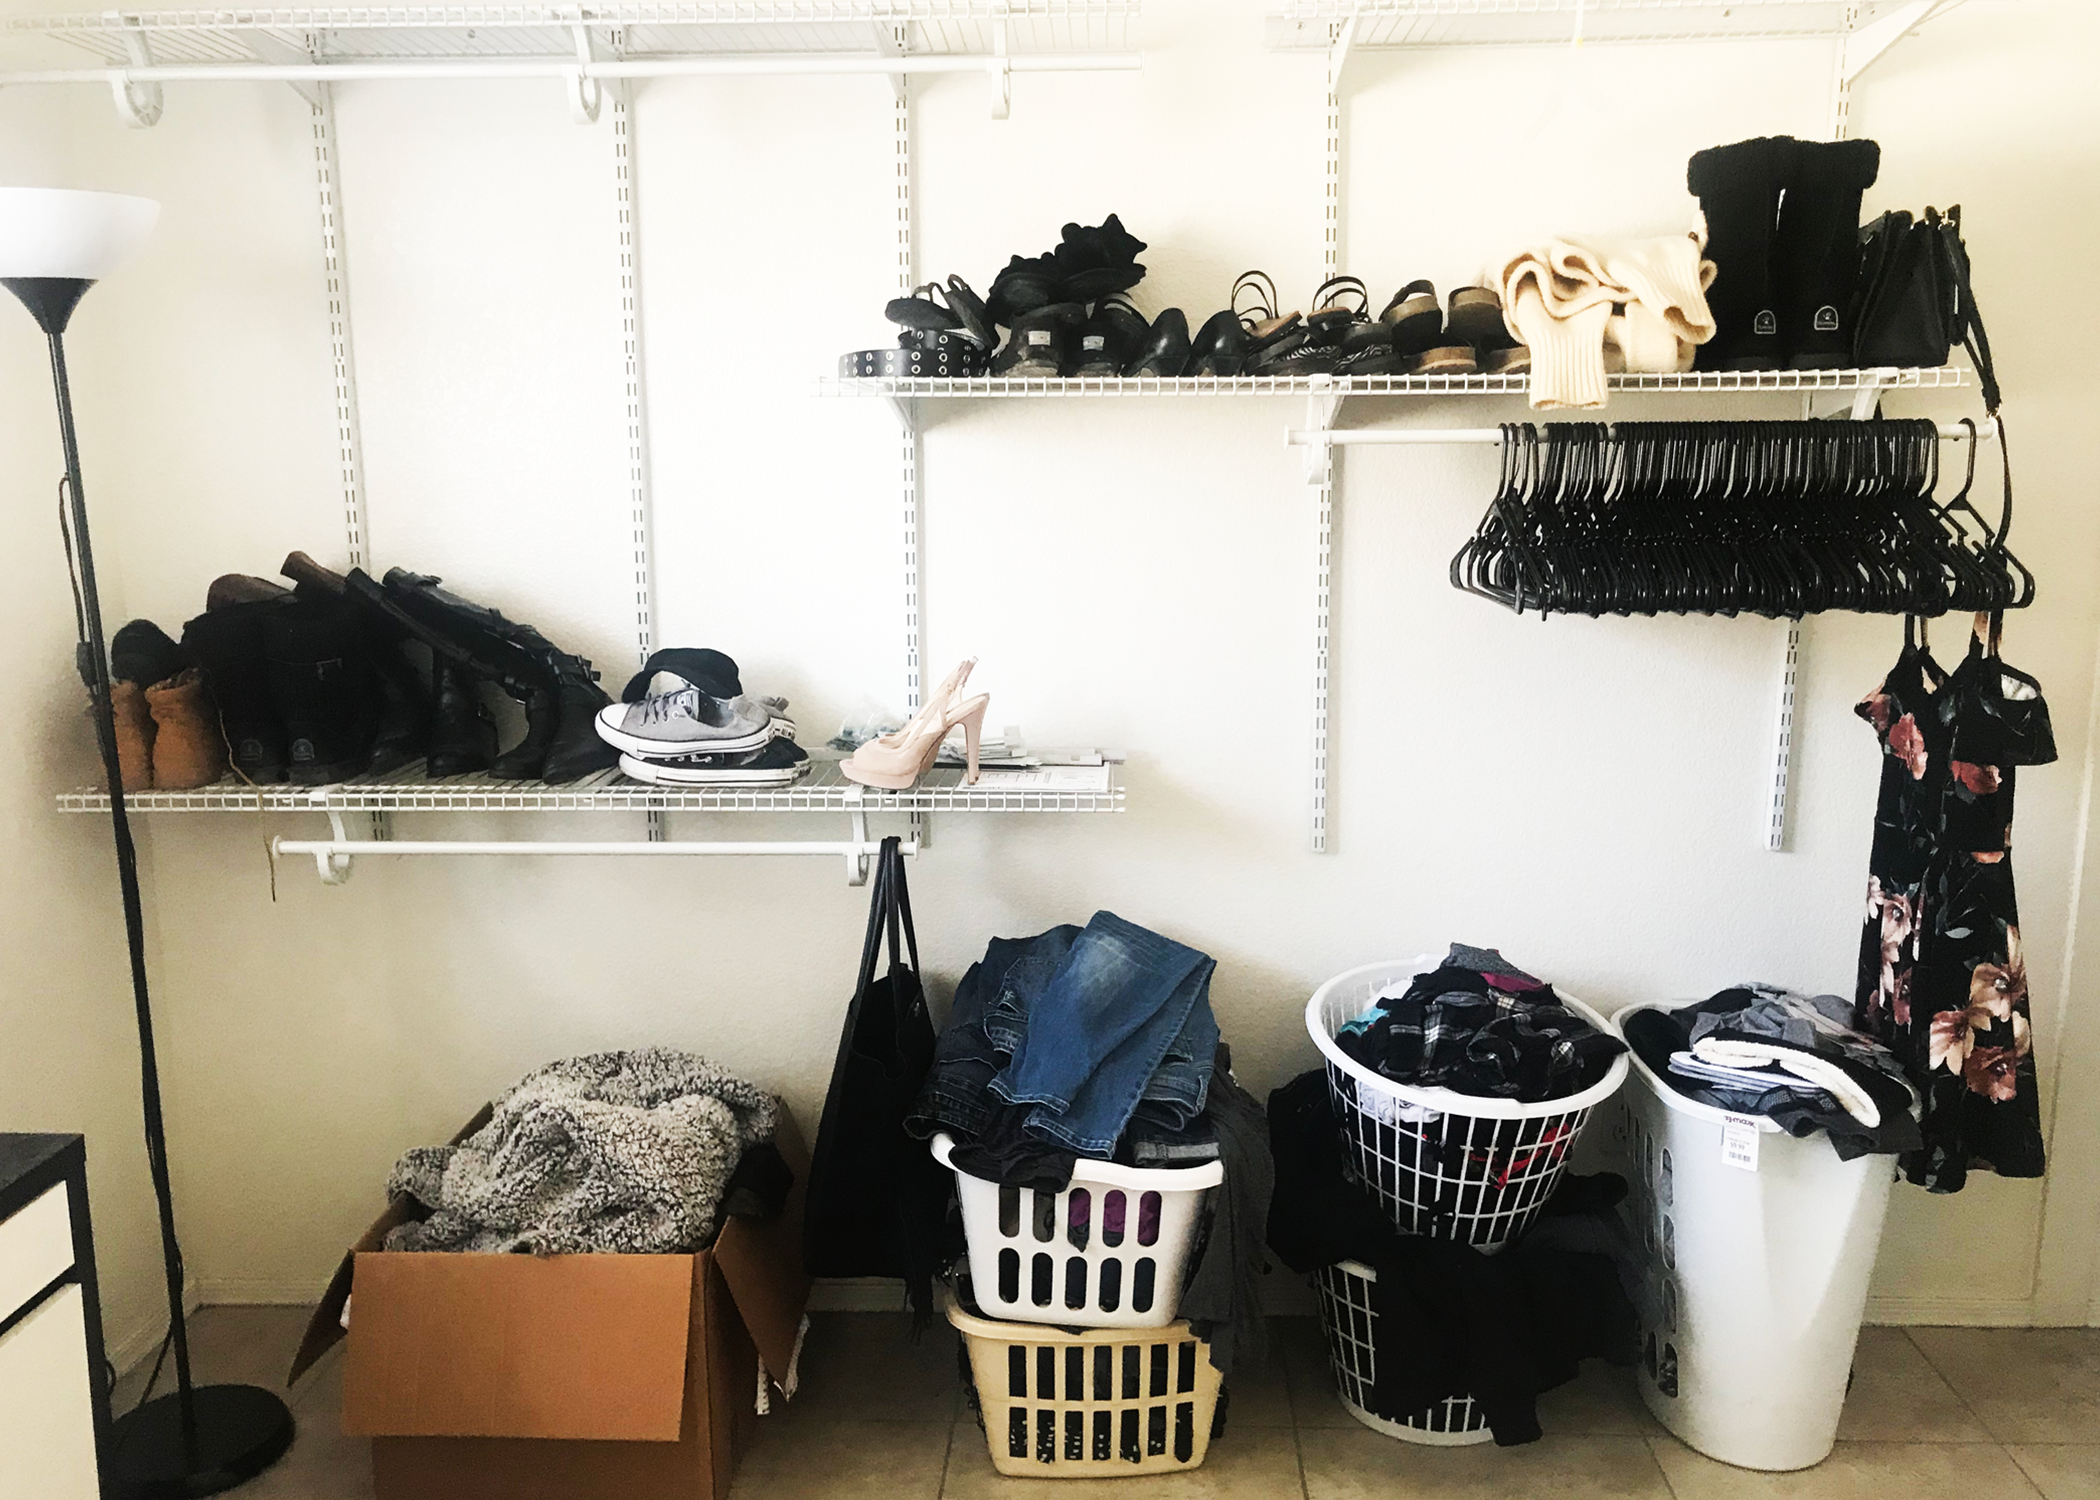 A shelving set against a wall with shoes and folded clothes.